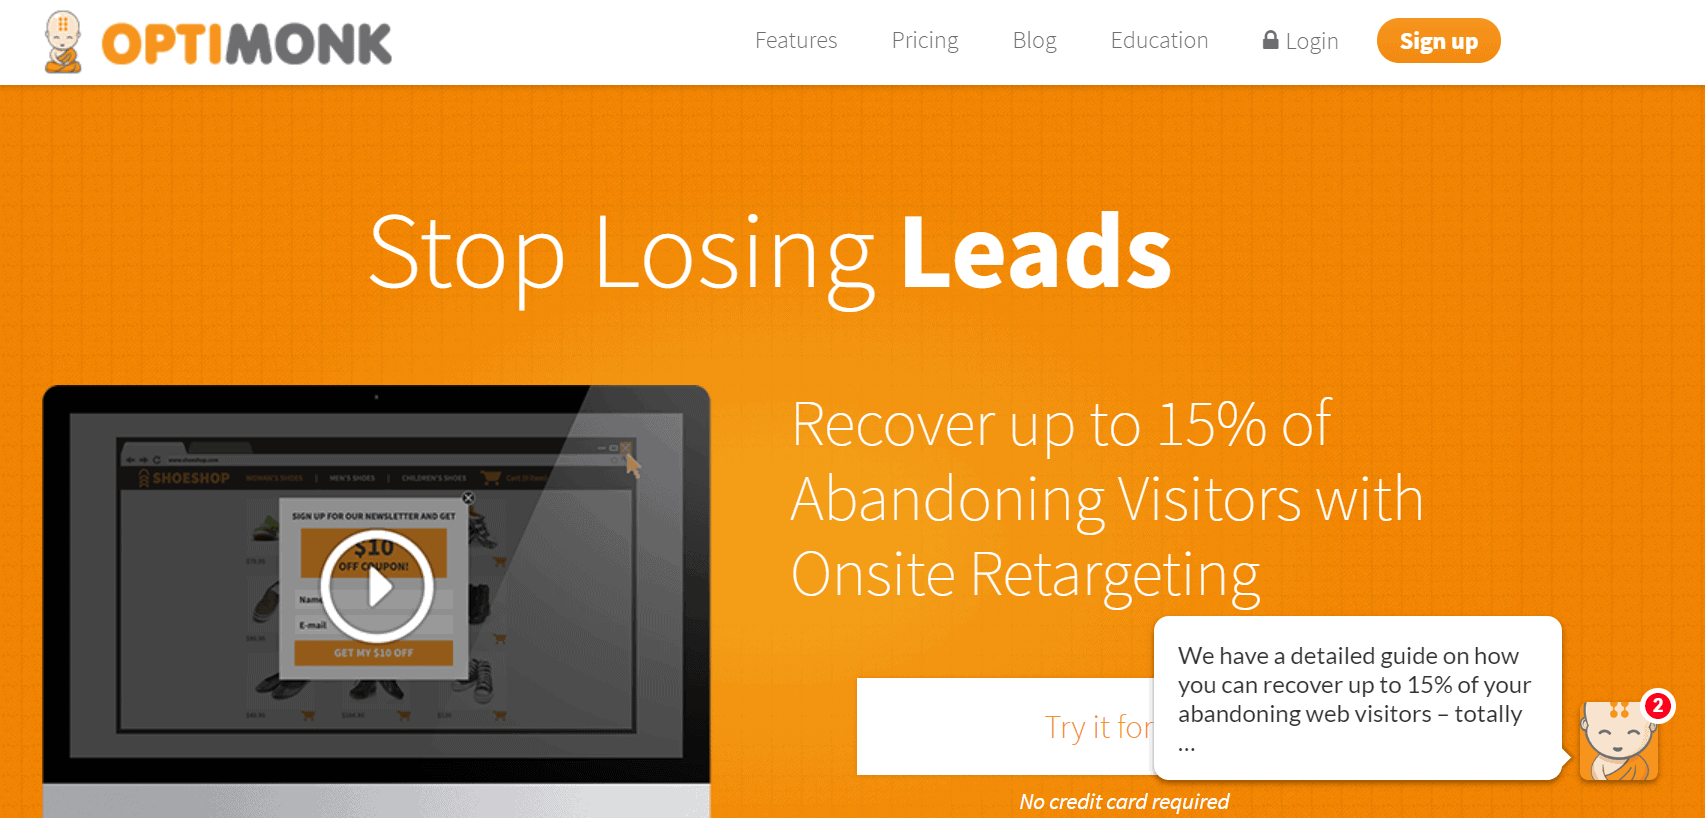 outil lead generation b2b optimonk